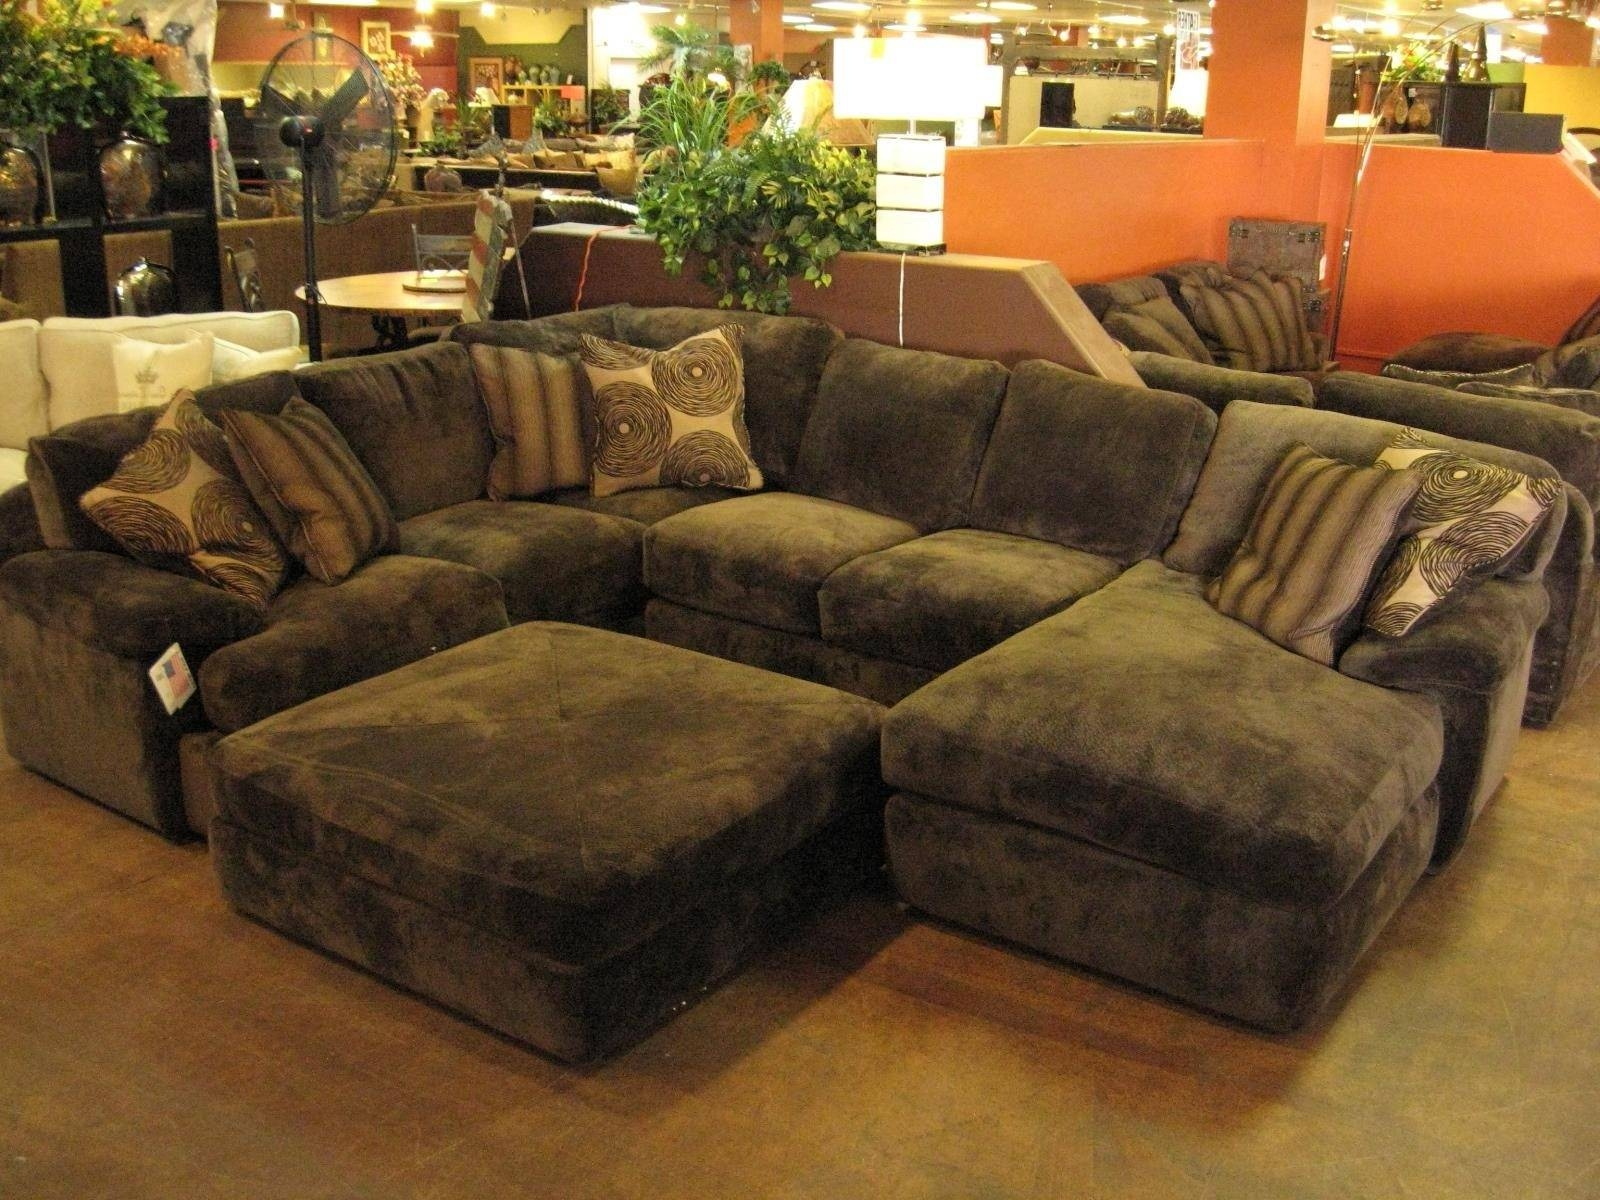 Sofas Center : Large Sectional Sofas With Chaise Southnextus pertaining to Sectional Sofa With Large Ottoman (Image 25 of 30)